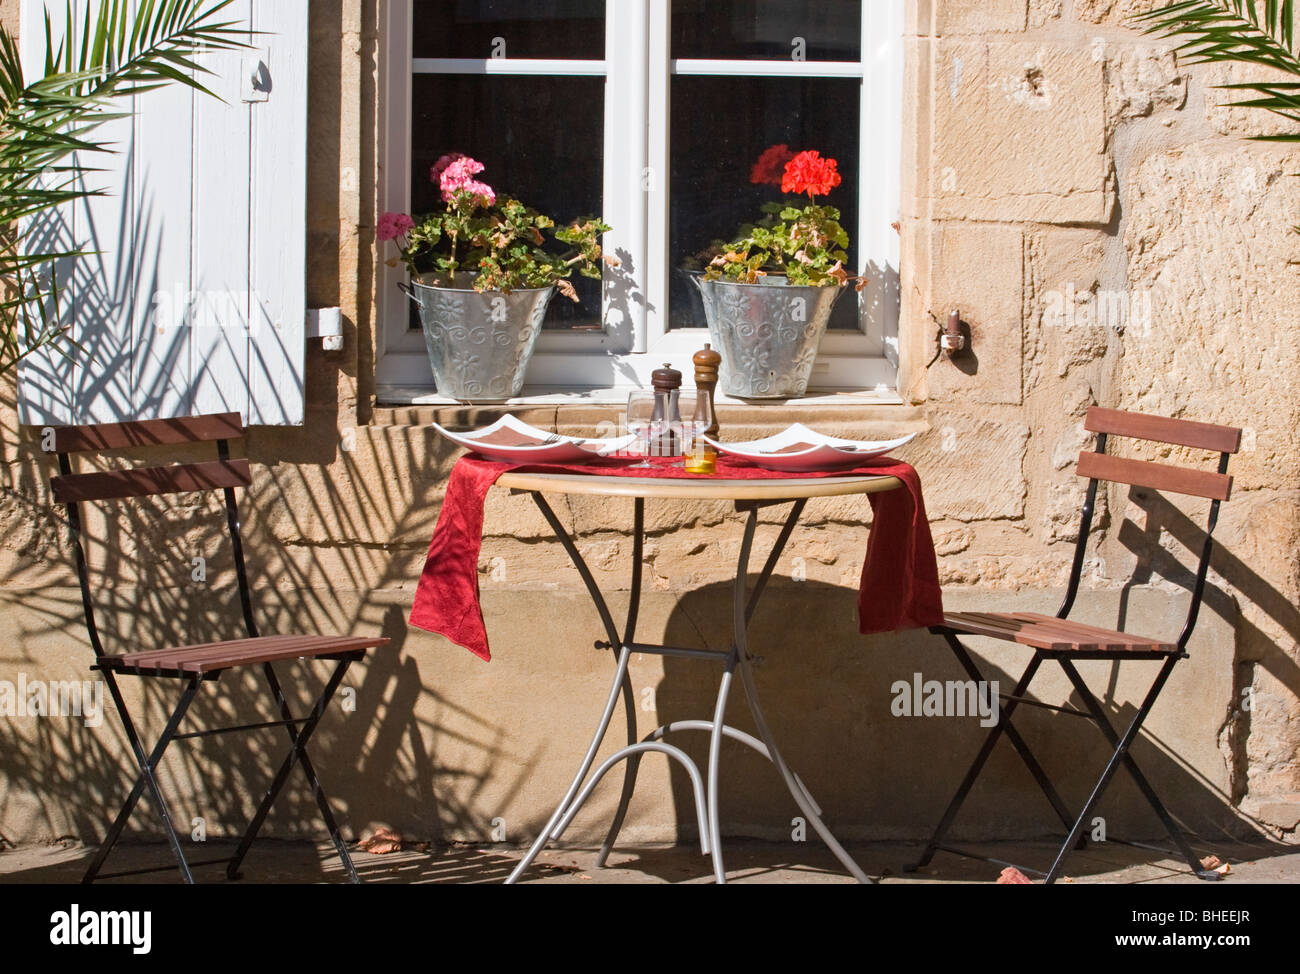 Restaurant table for two - A Charming Cafe Table For Two Outside The Restaurant La Flambee In The Picturesque Medieval Village Of Domme Dordogne France